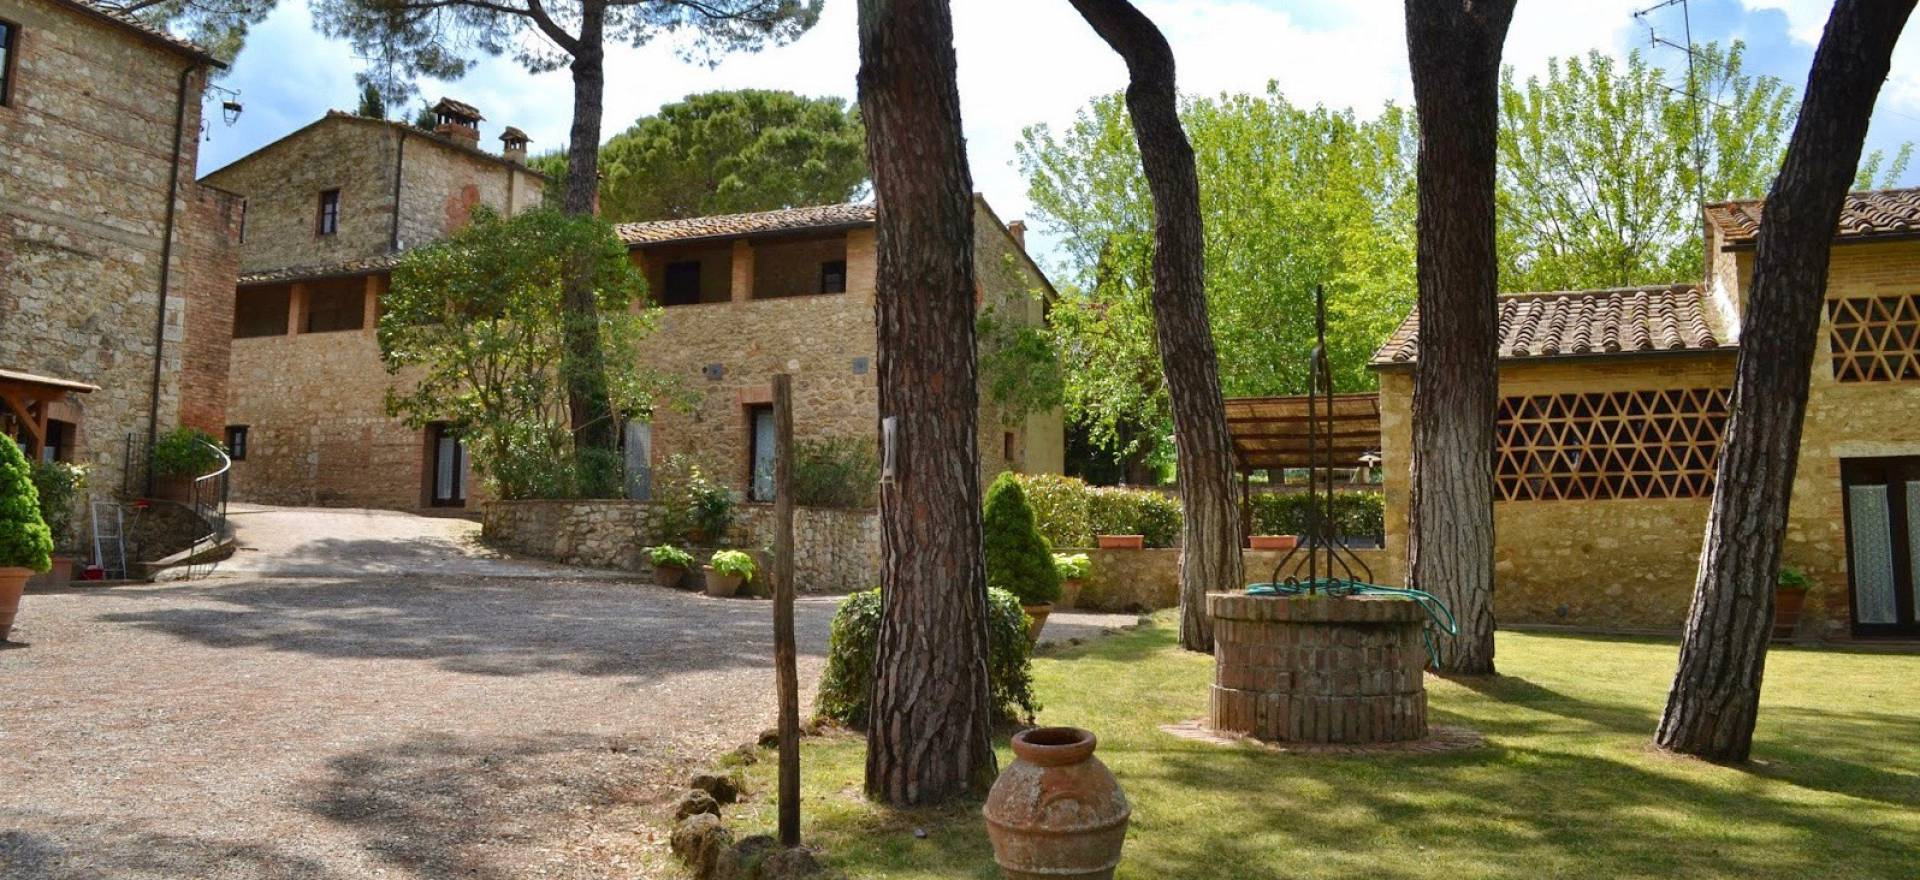 Agriturismo Tuscany Characteristic agriturismo centrally located in Tuscany